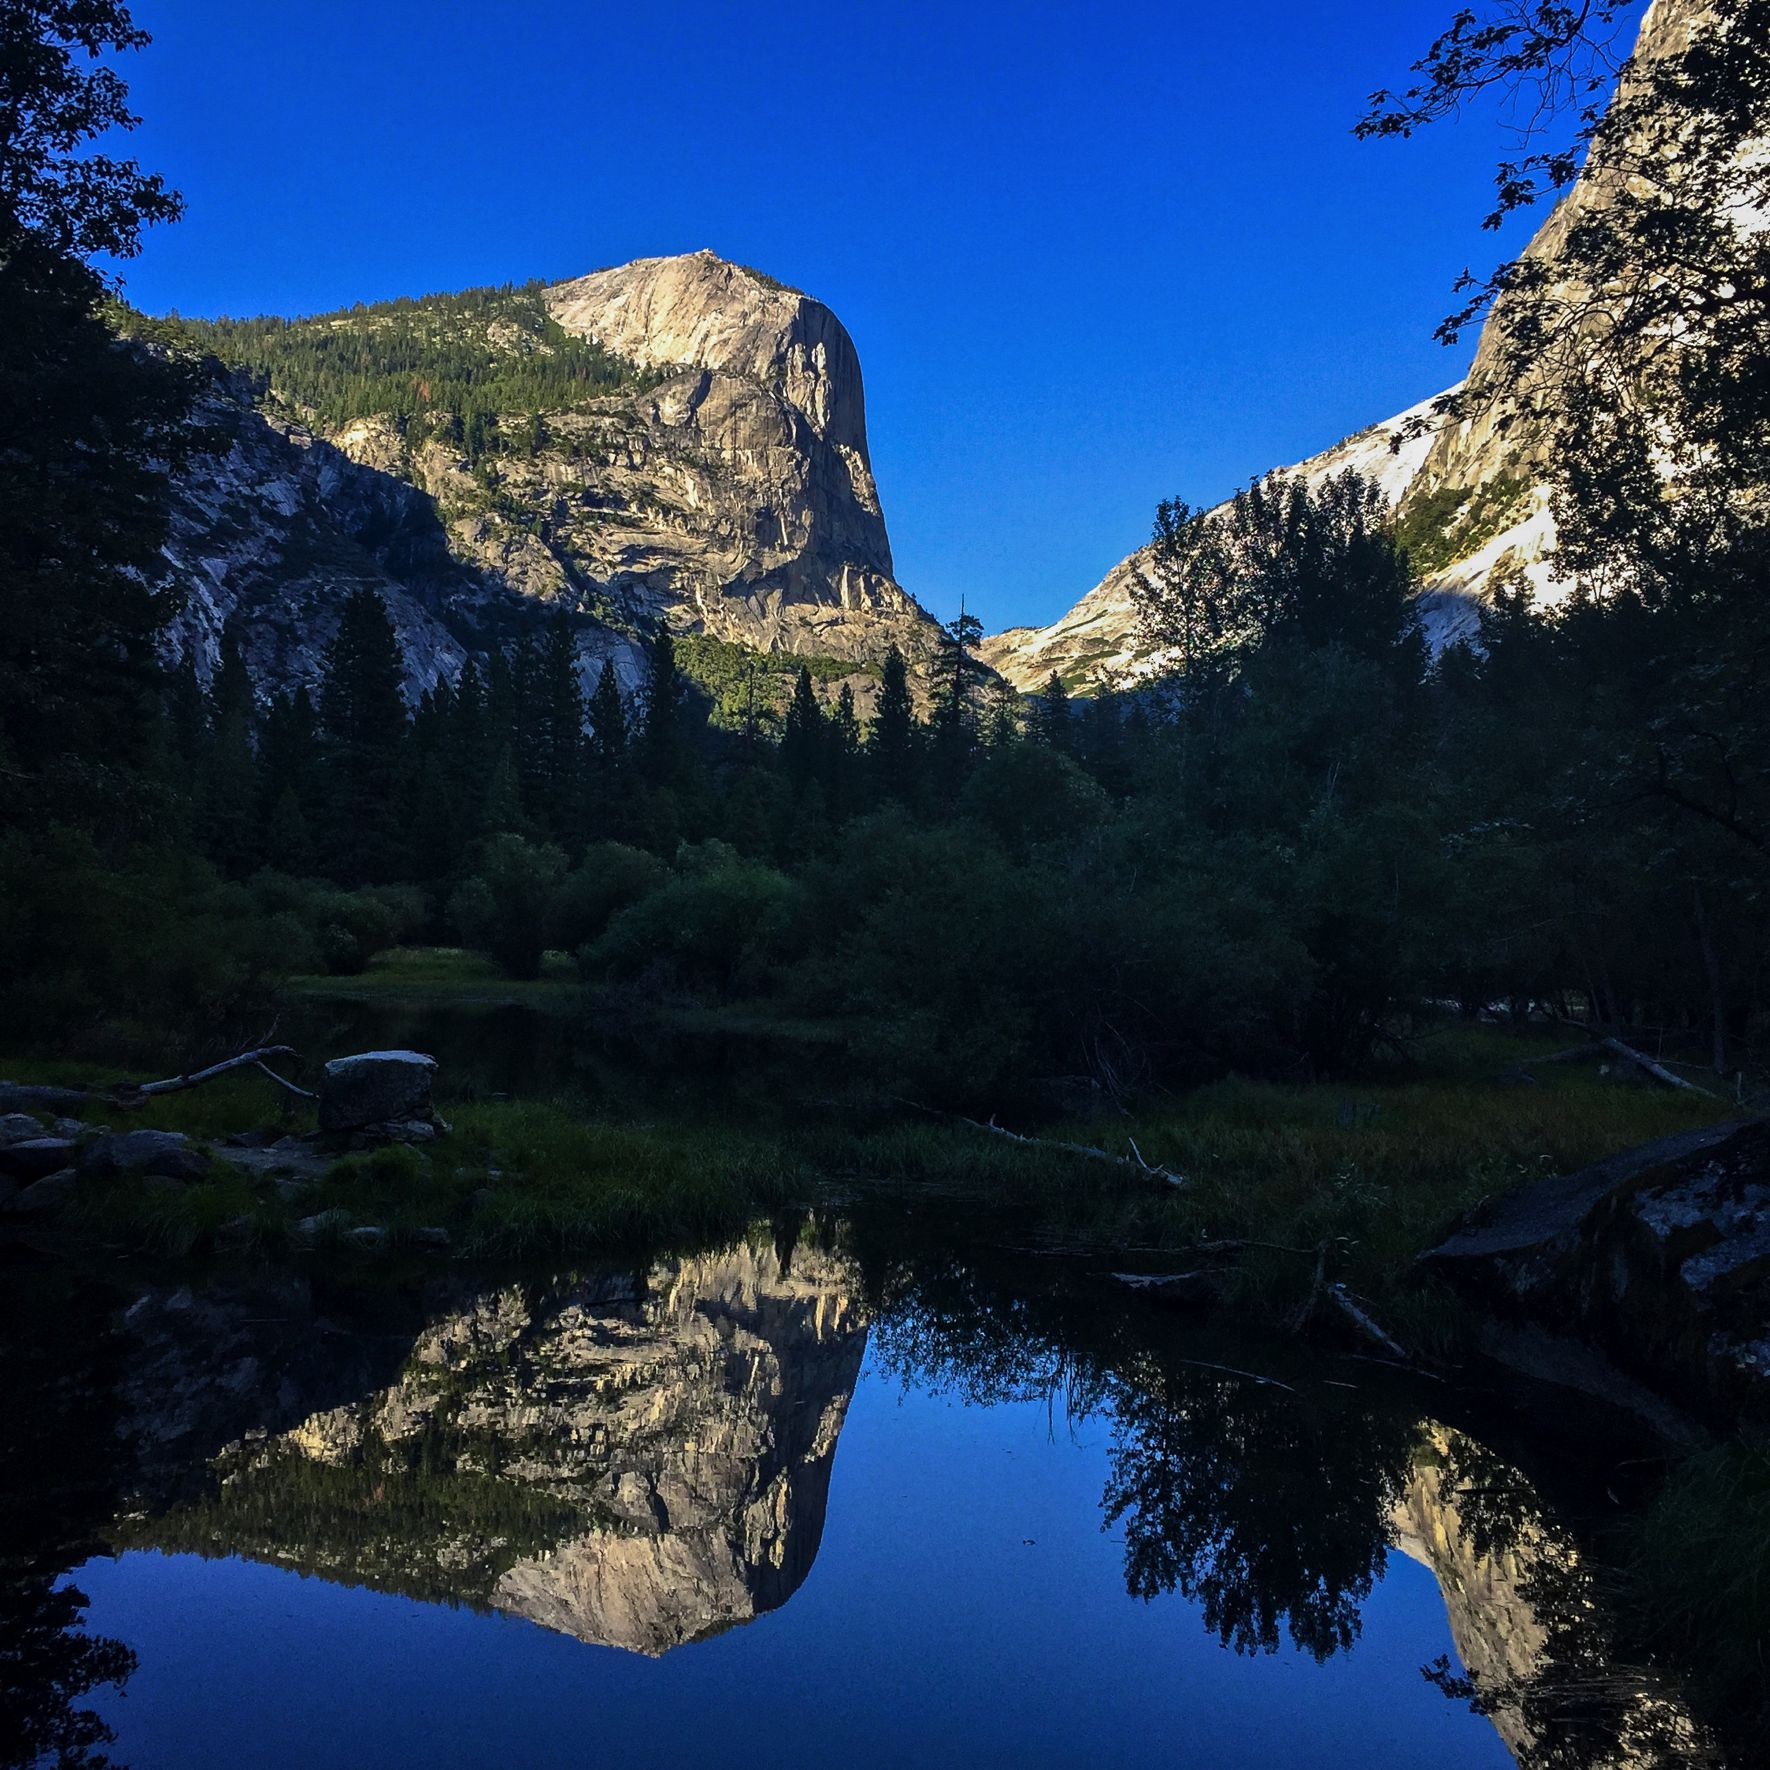 Steen-Jones-Artist-Travel-USA-Yosemite-20.jpg